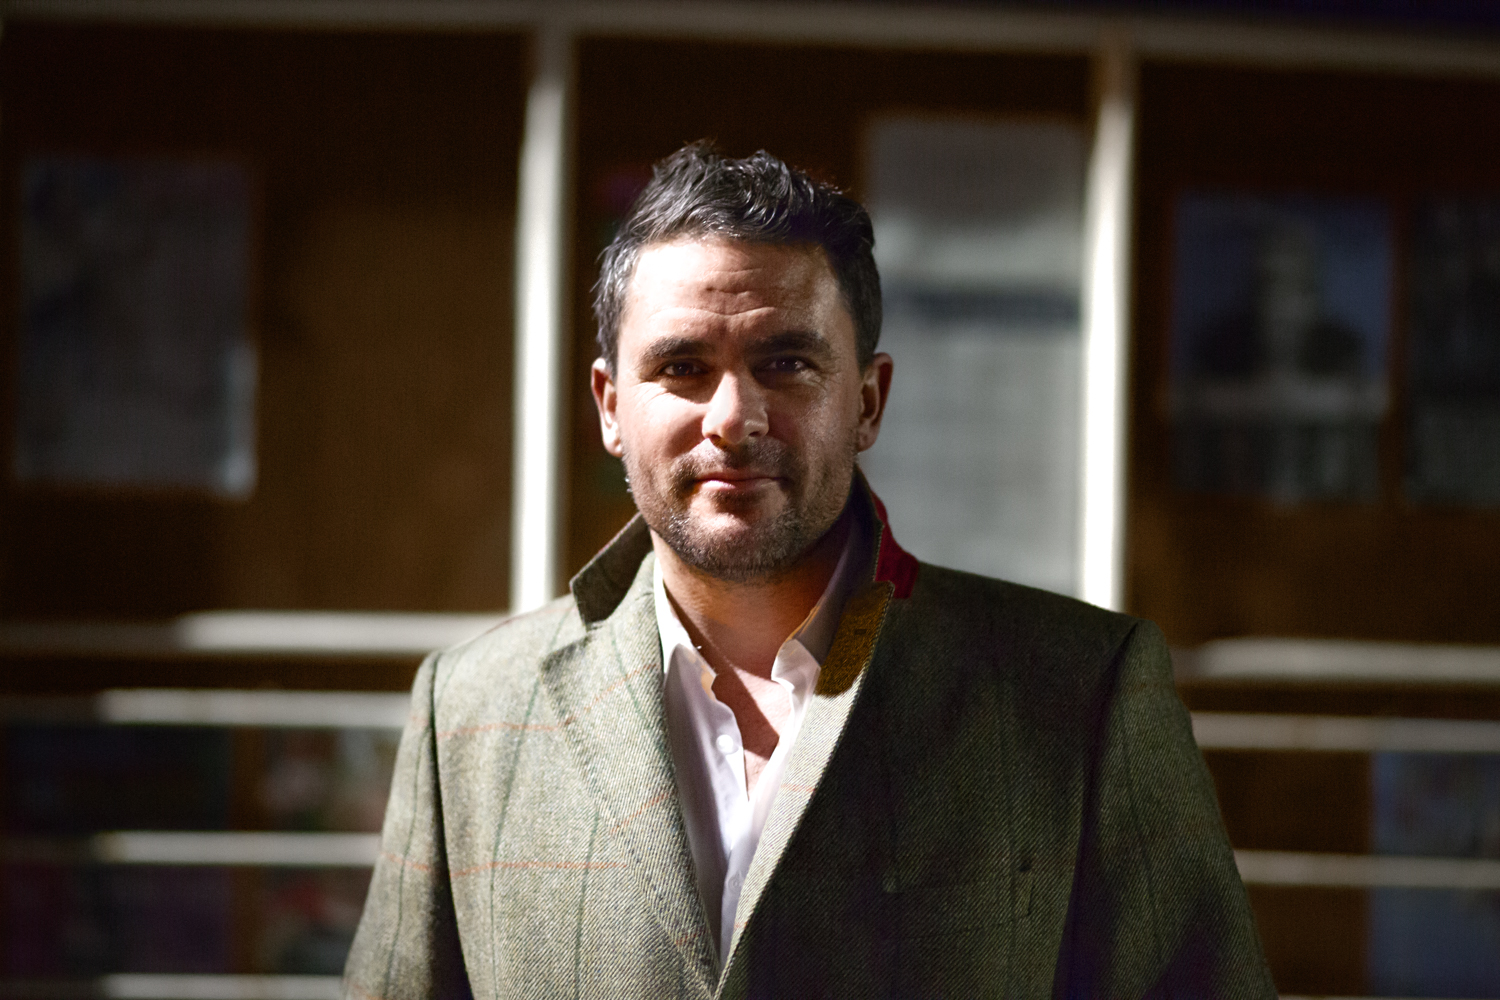 """Levison Wood by Envela Castel for his lecture """"an Evening with Levison Wood""""in Newcastle, U.K."""